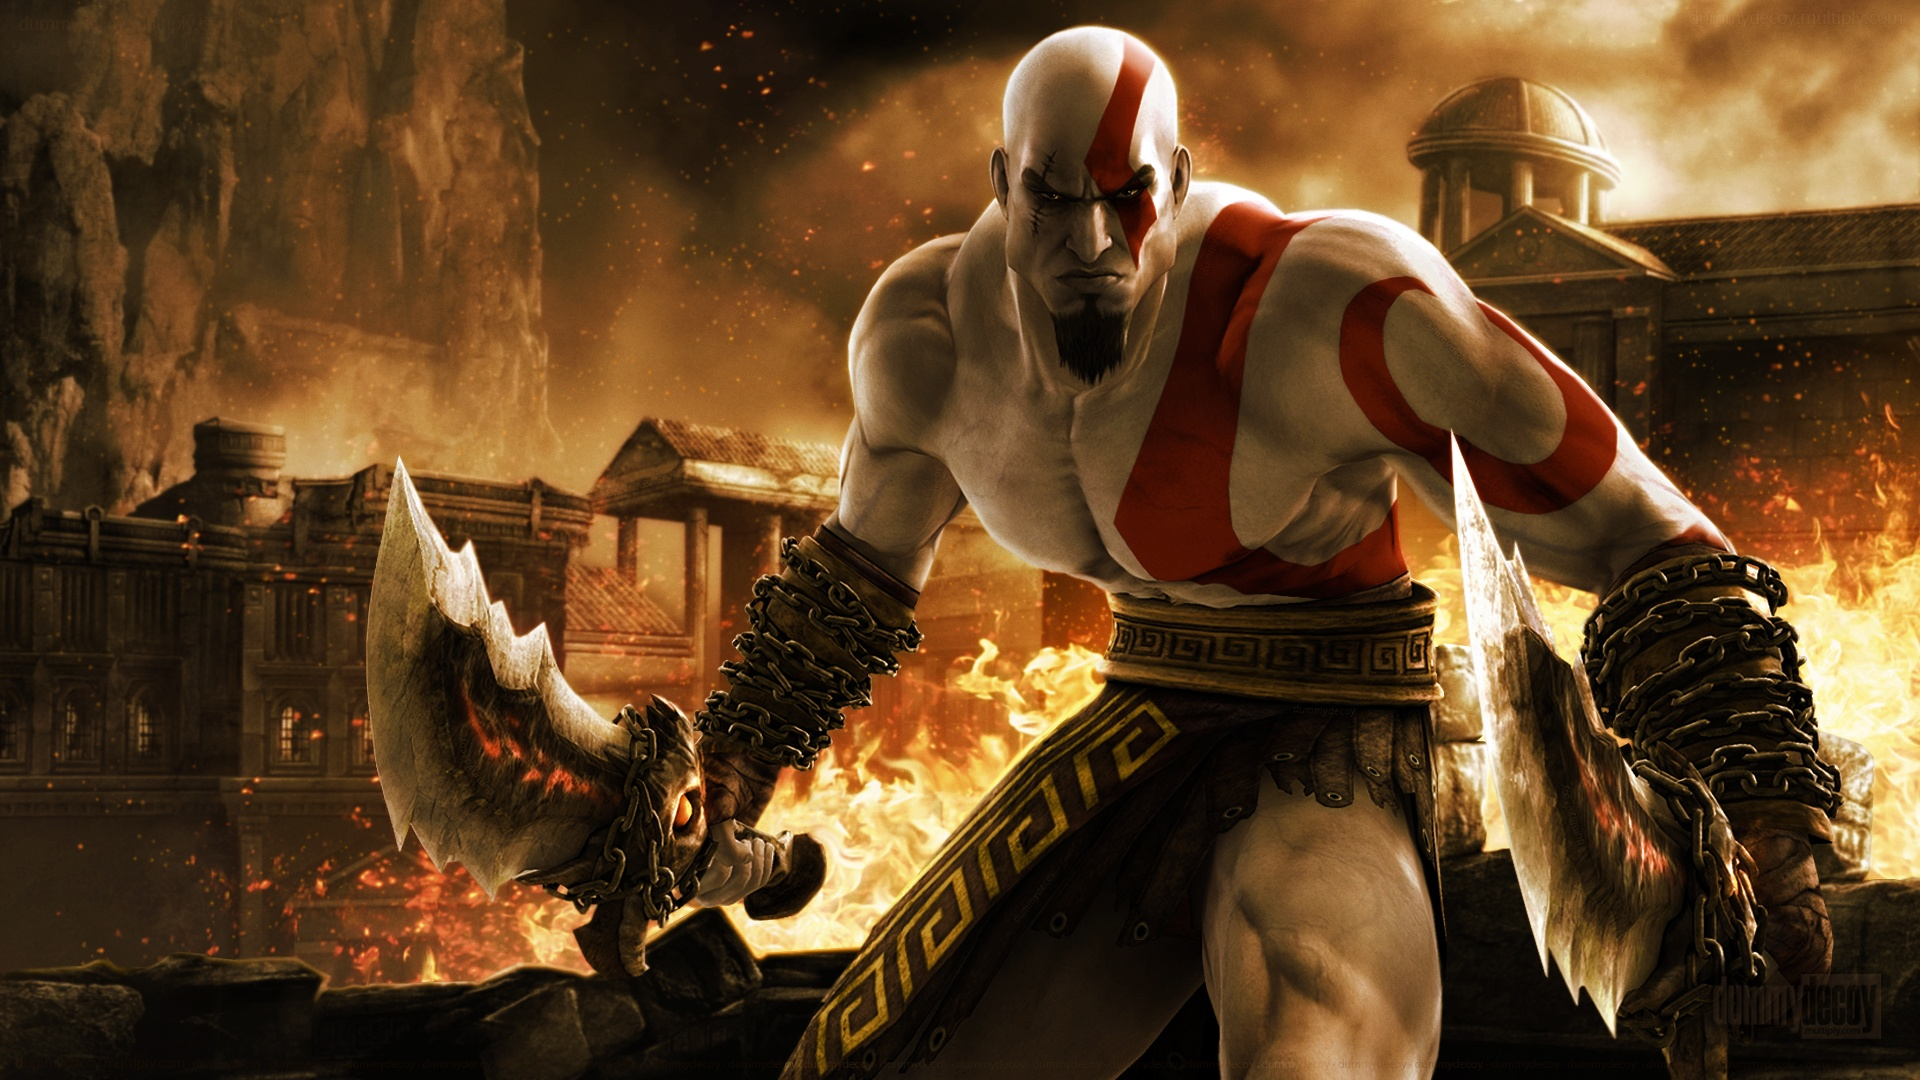 Kratos In God Of War Wallpapers In Jpg Format For Free Download